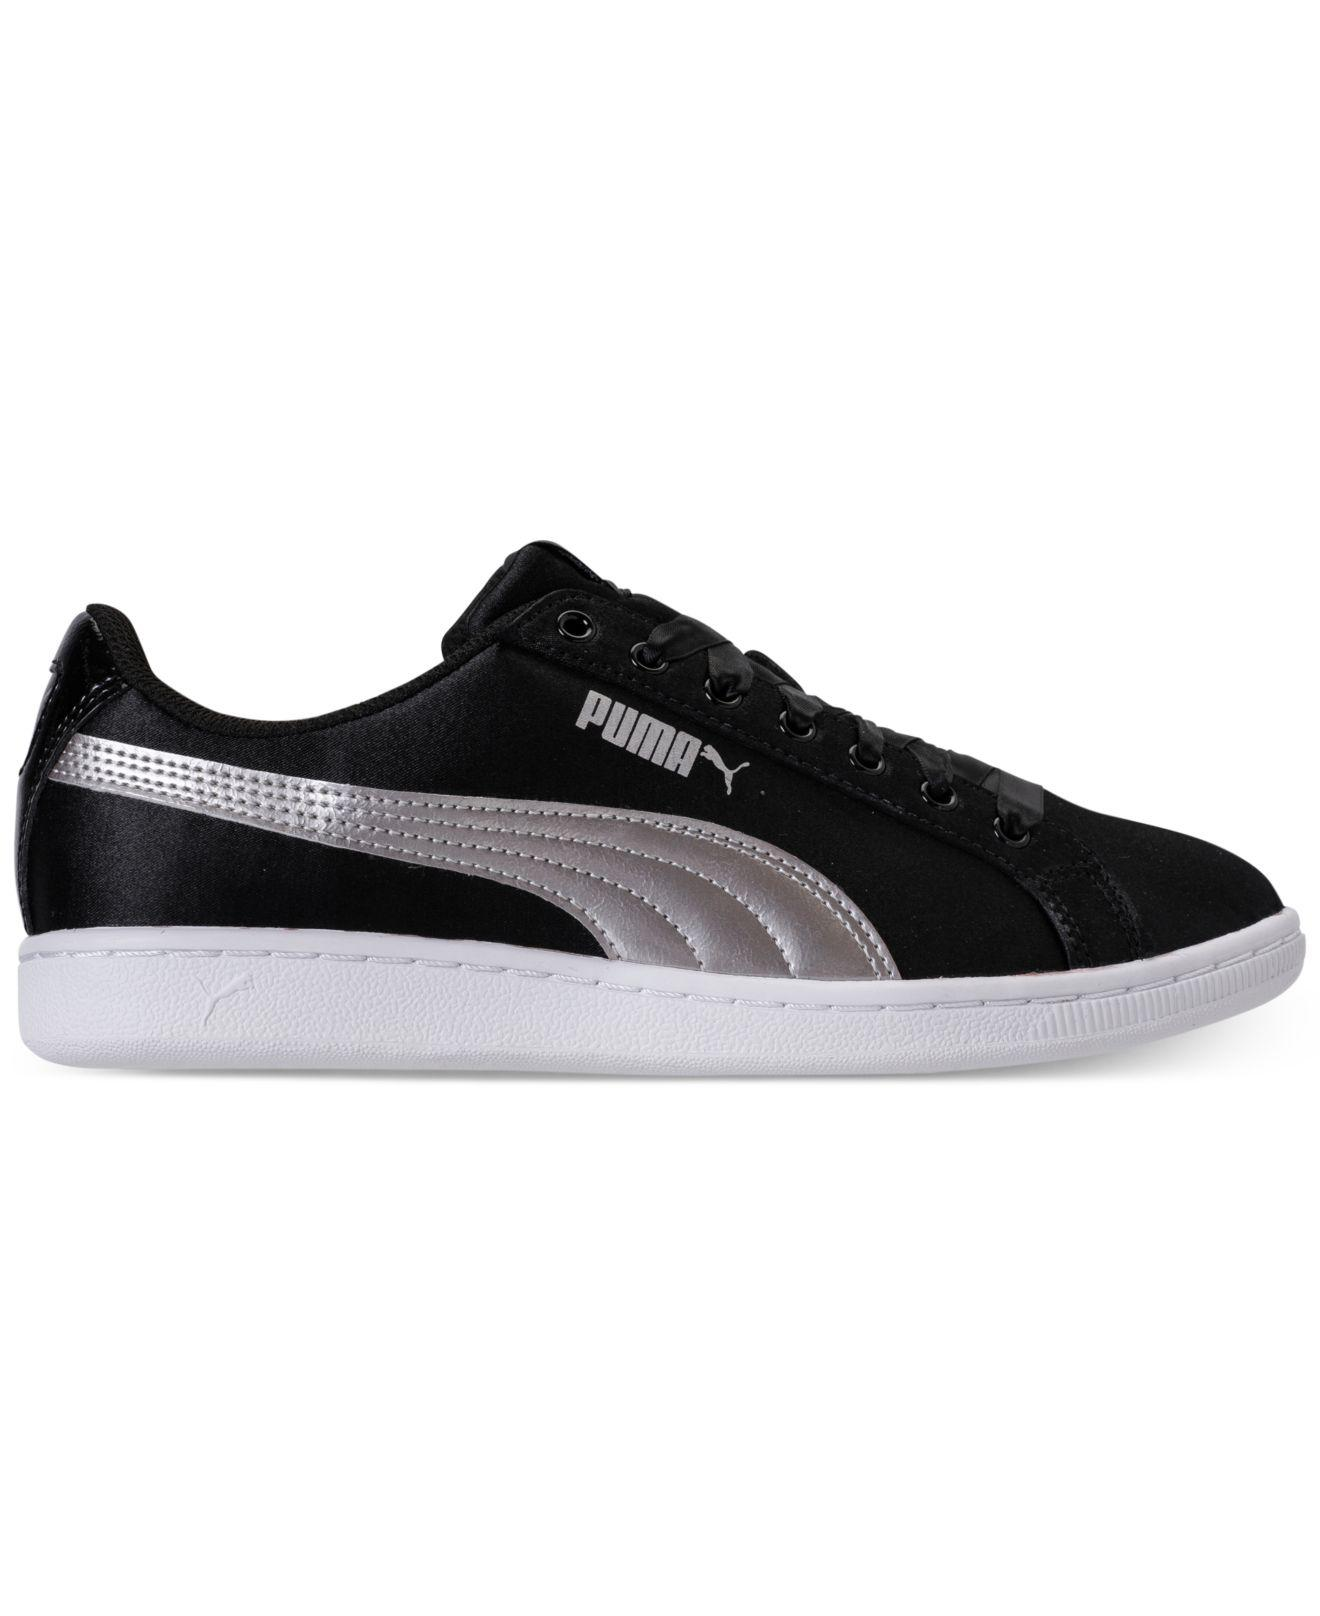 Lyst - PUMA Vikky Ep Casual Sneakers From Finish Line in Black f082d135c